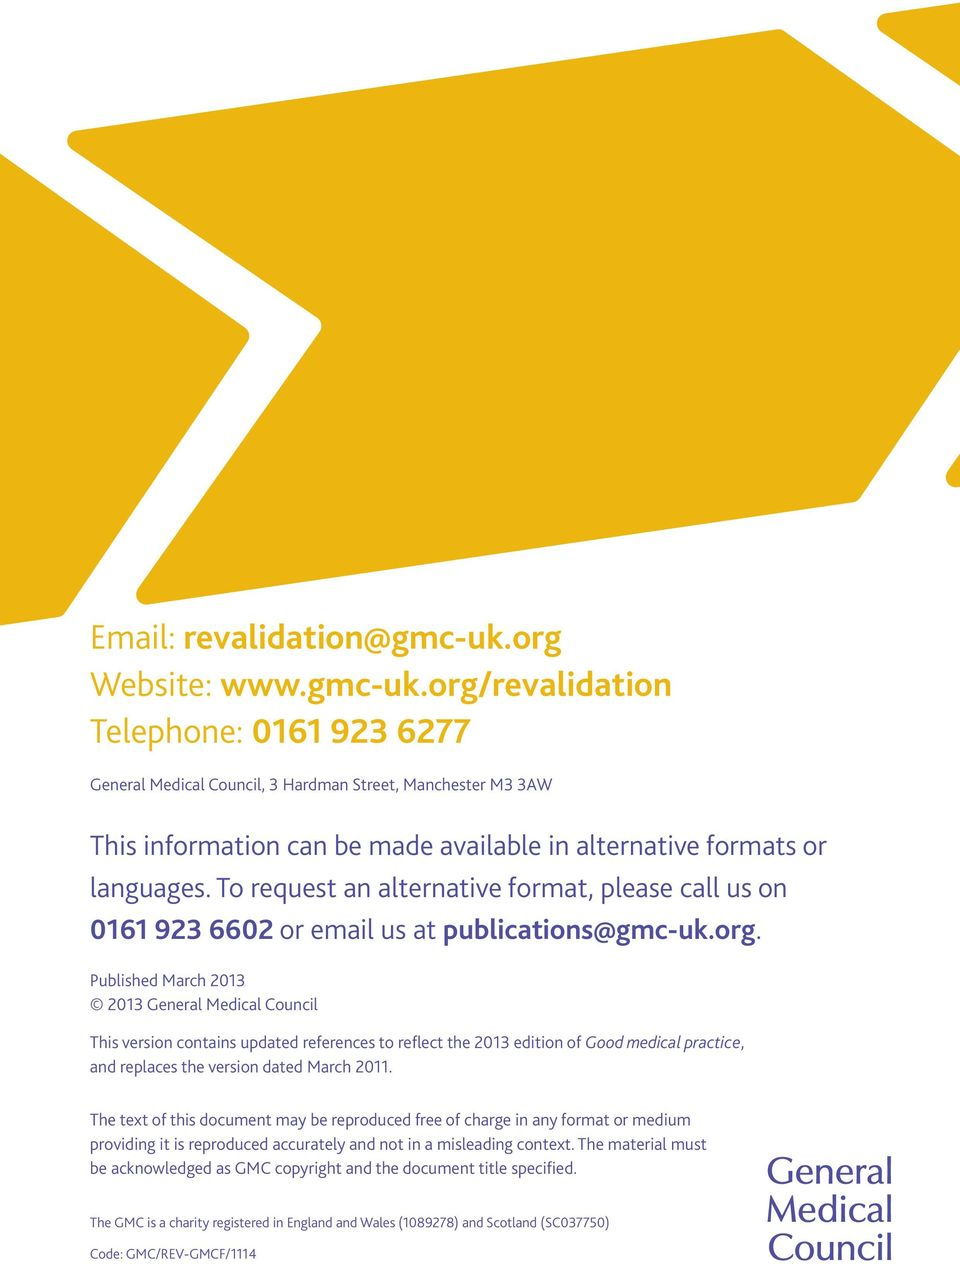 org/revalidation Telephone: 0161 923 6277 General Medical Council, 3 Hardman Street, Manchester M3 3AW This information can be made available in alternative formats or languages.